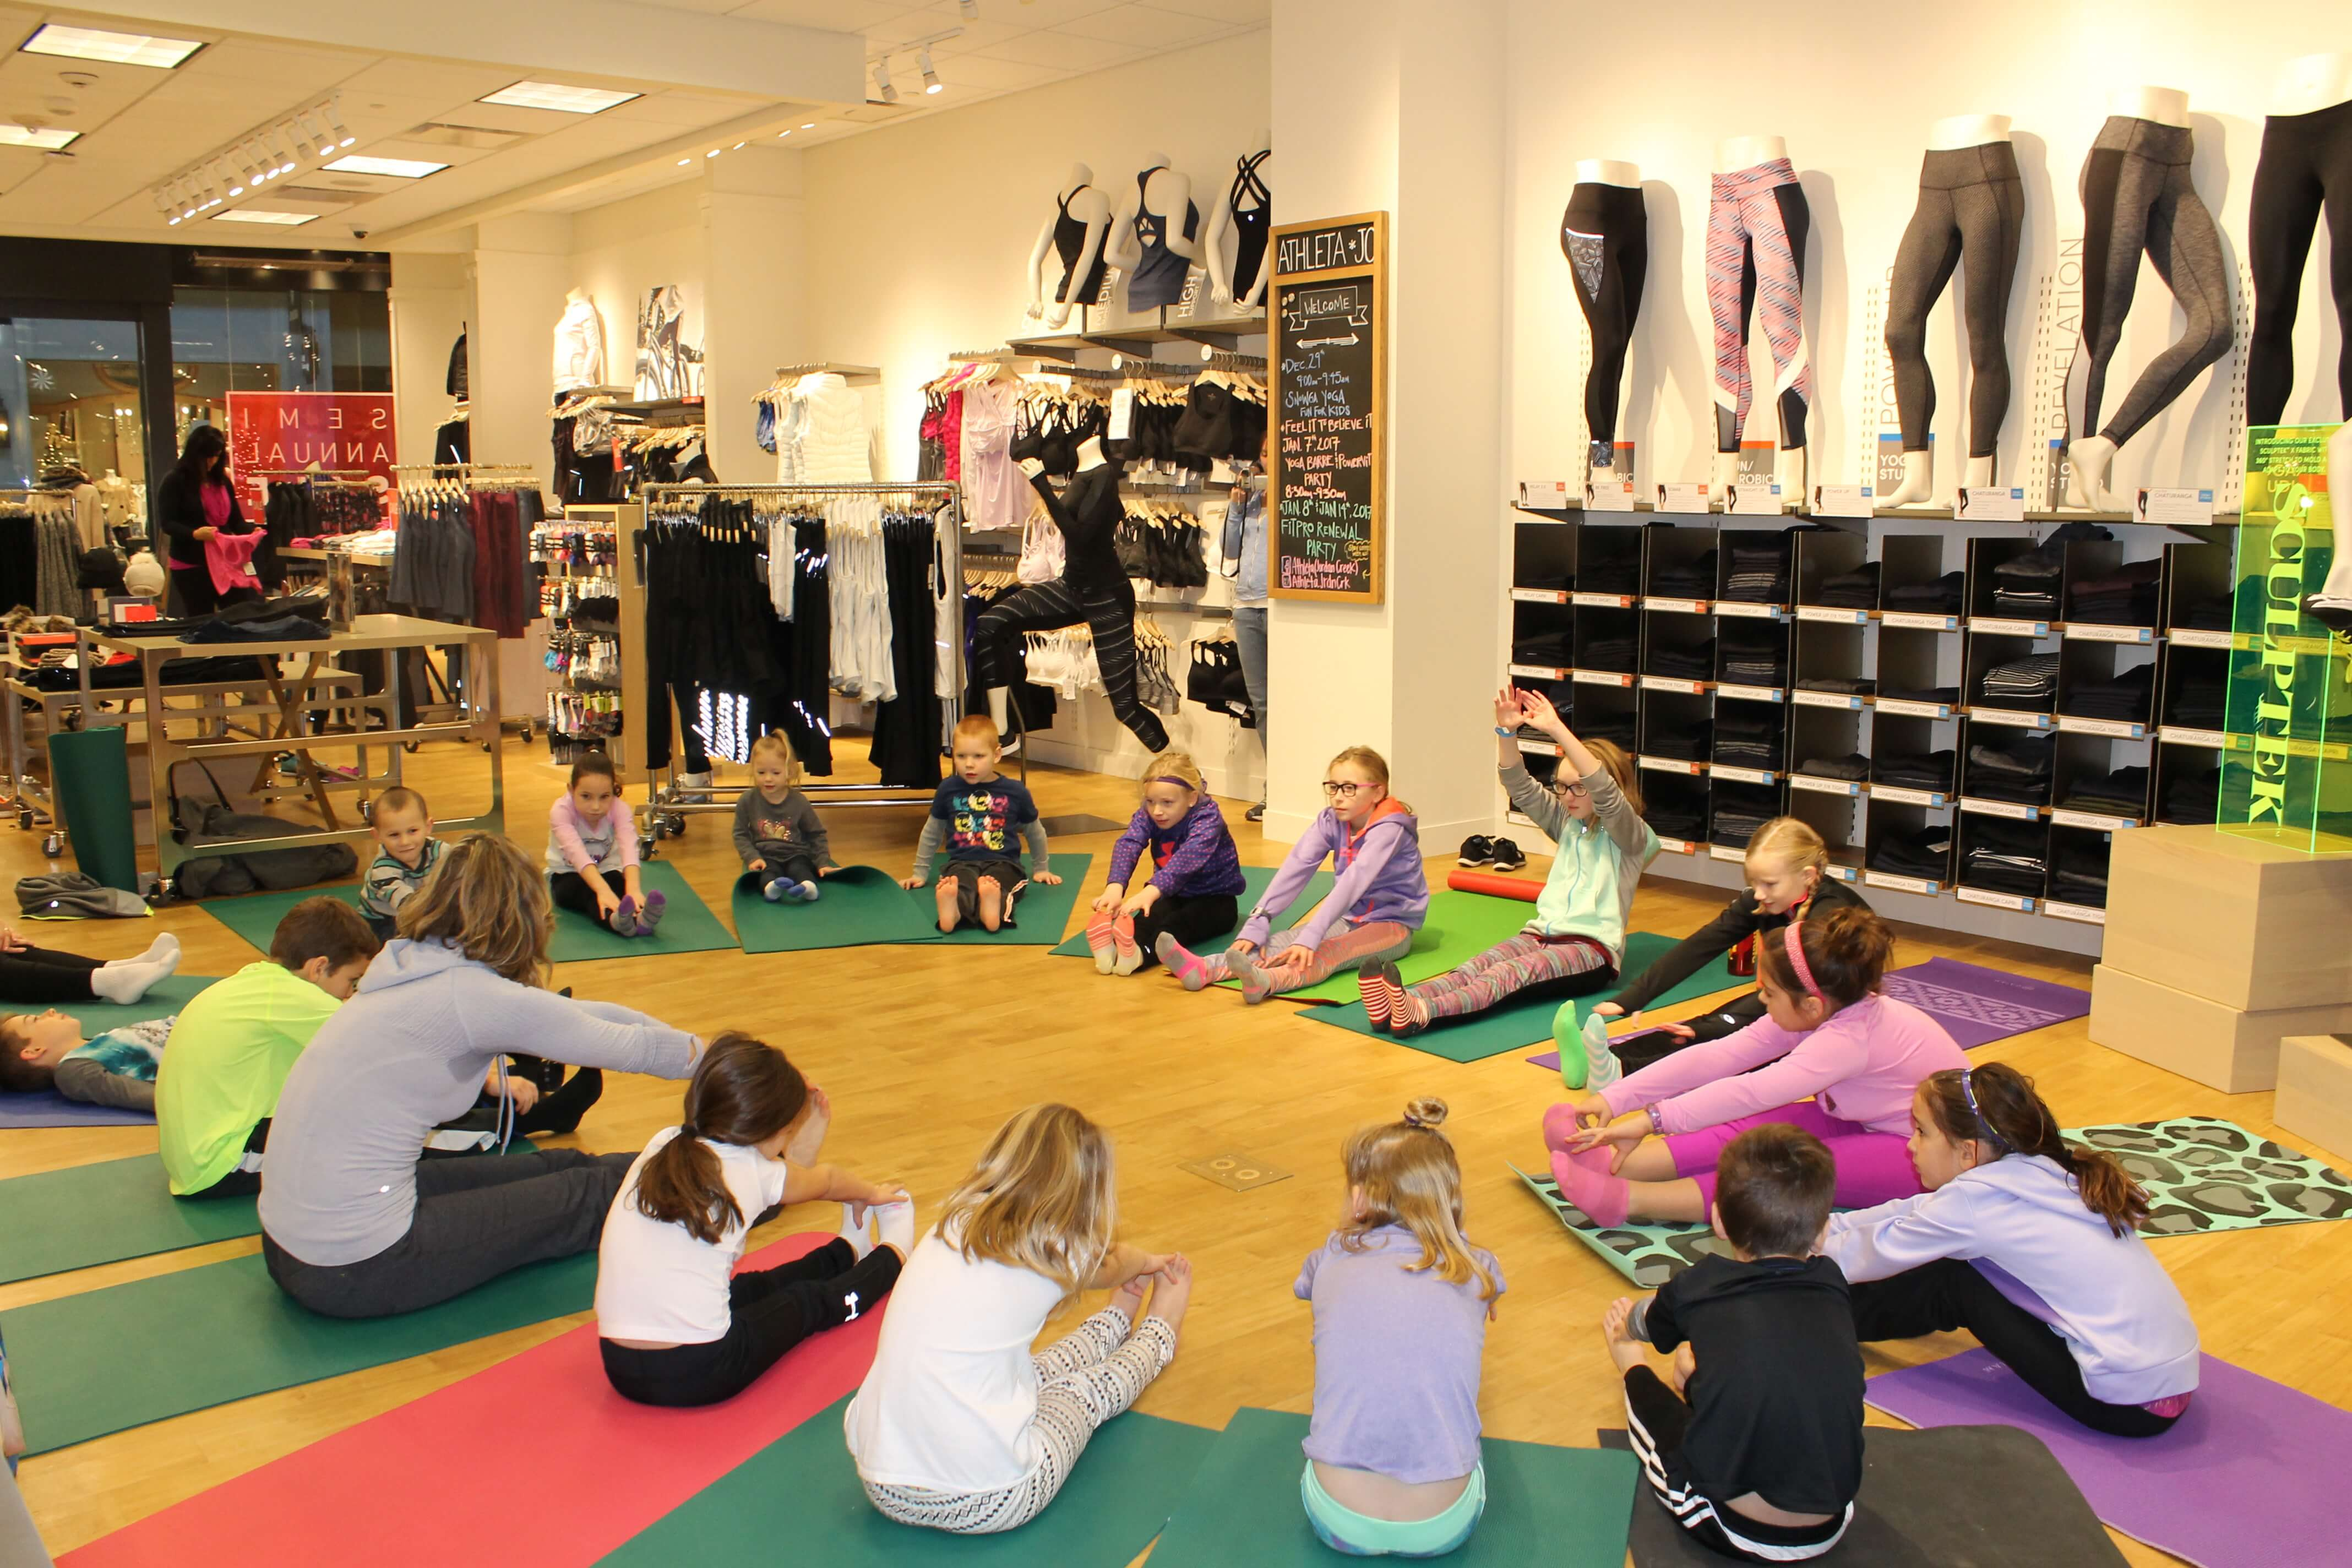 Here is a peek at our fun kids winter yoga sequence at Athletaover winter break. Sun salutations and partner poses in this class